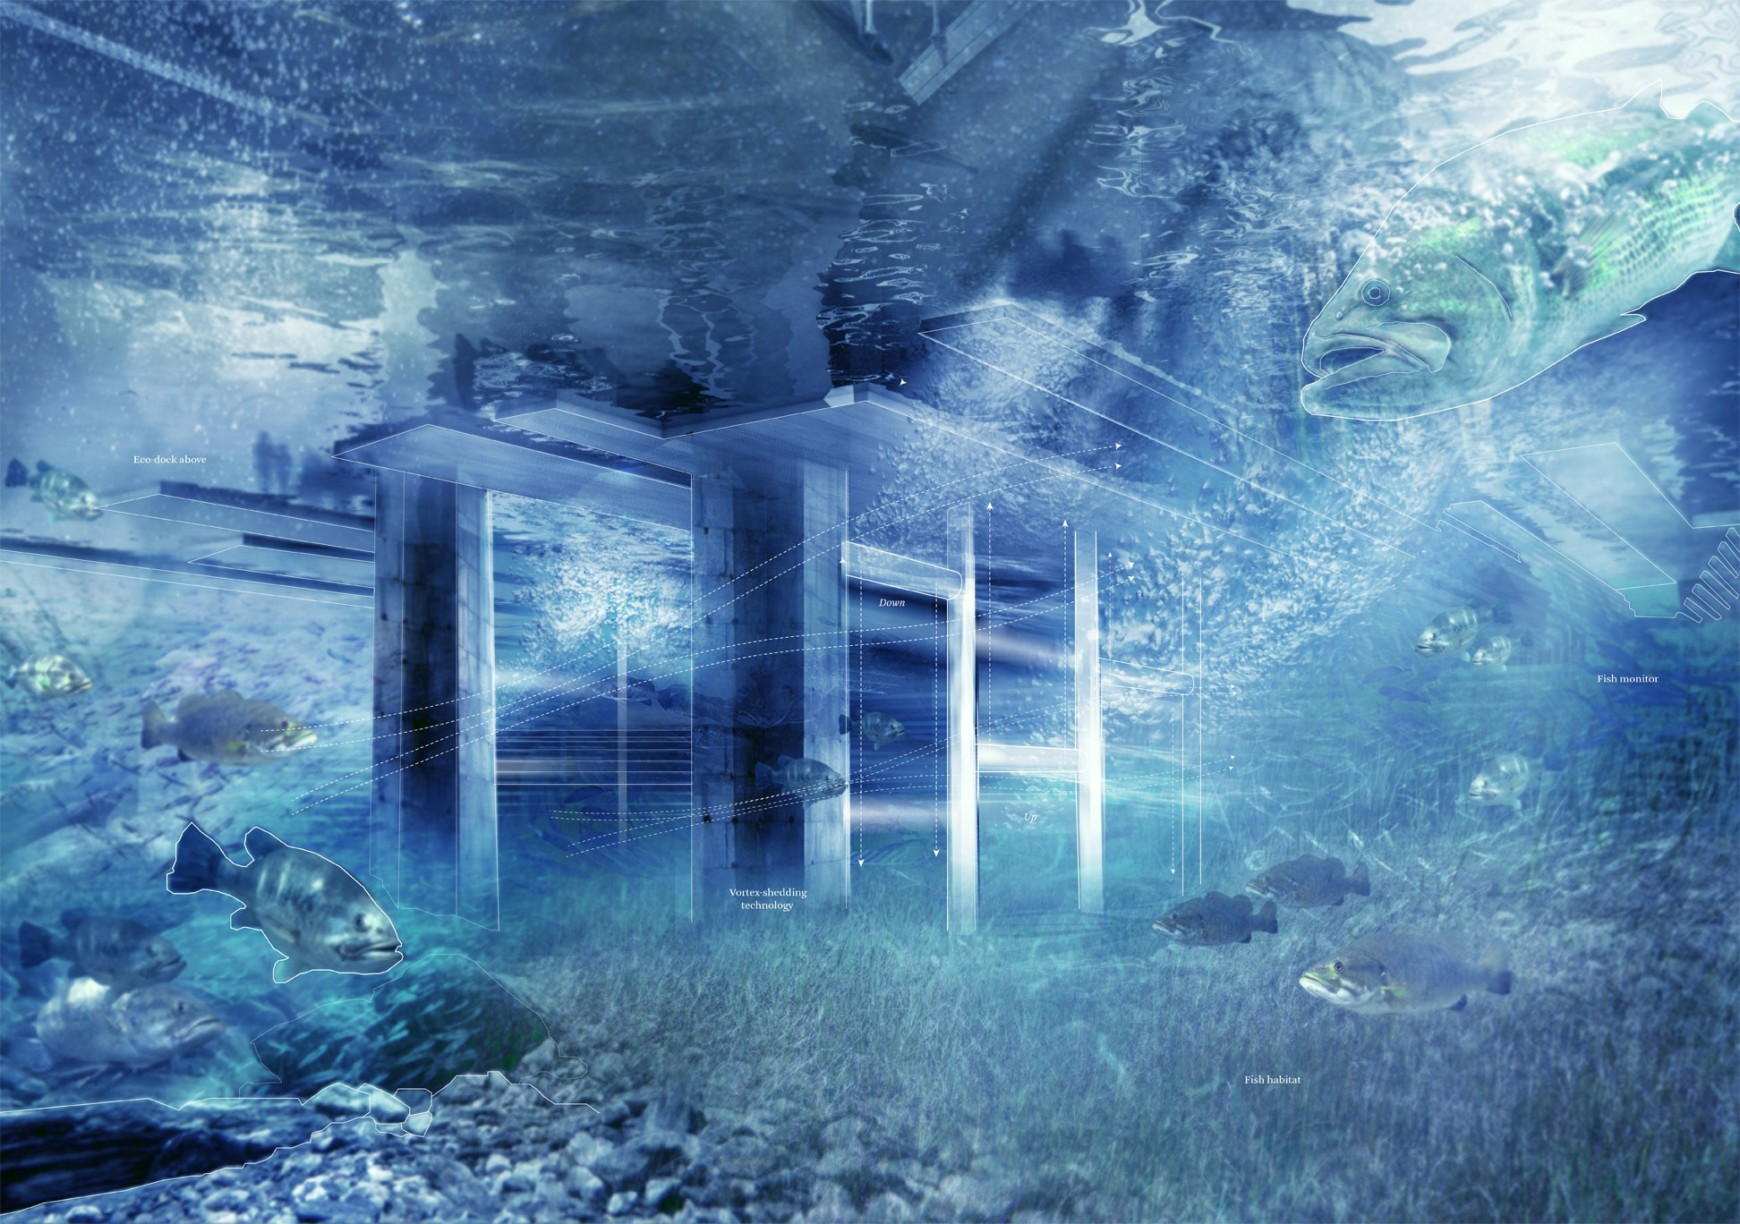 Water-shedding technology, SCAPE, Confluence: Portal to the Point